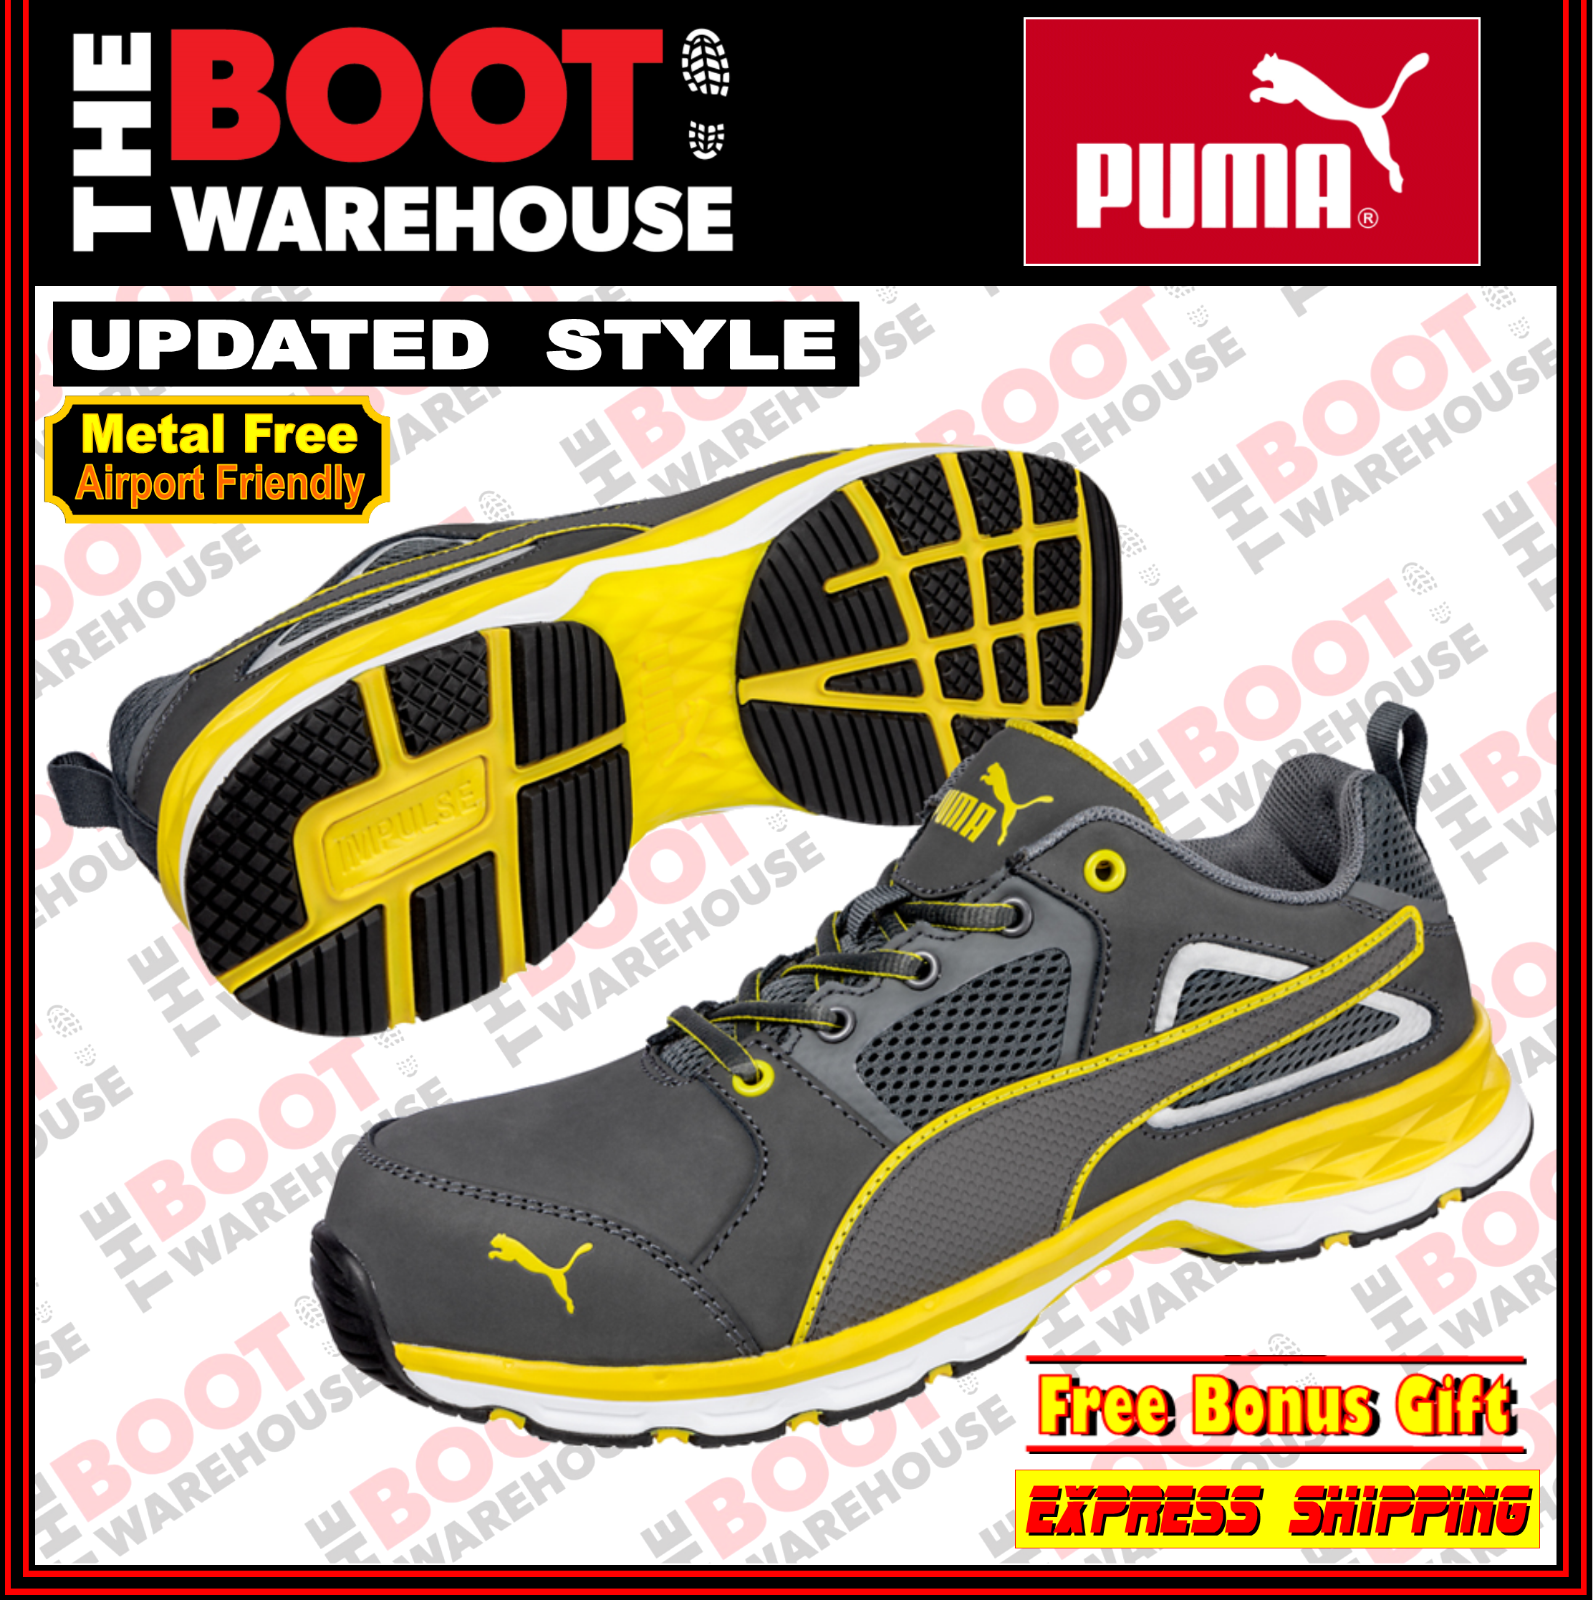 Puma 'PACE 2' 643807 Safety Composite Toe Cap Light Weight Work Jogger   shoes